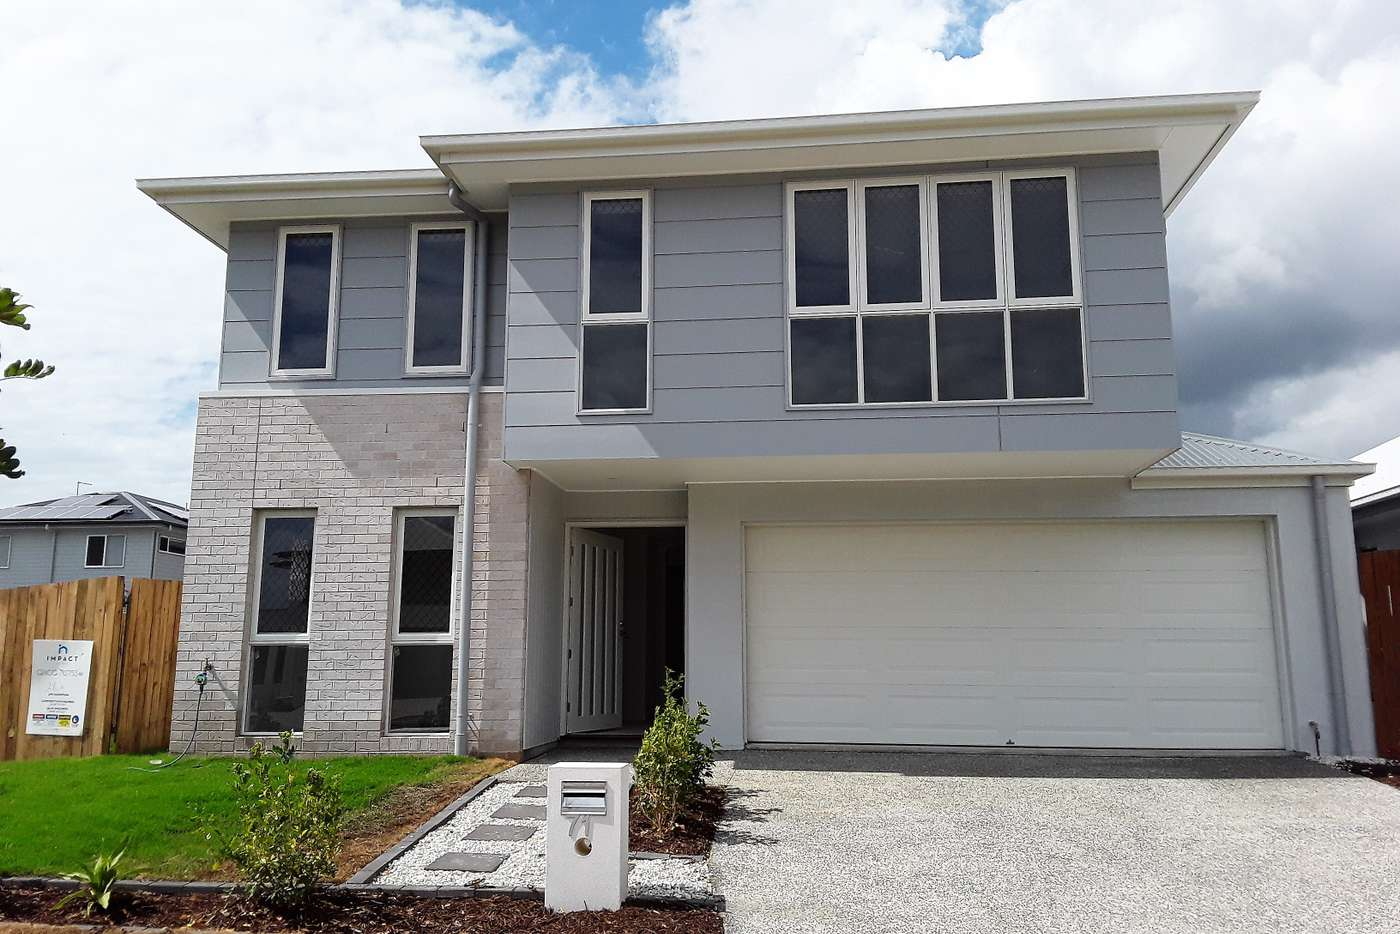 Main view of Homely house listing, 71 Lakeview Promenade, Newport QLD 4020